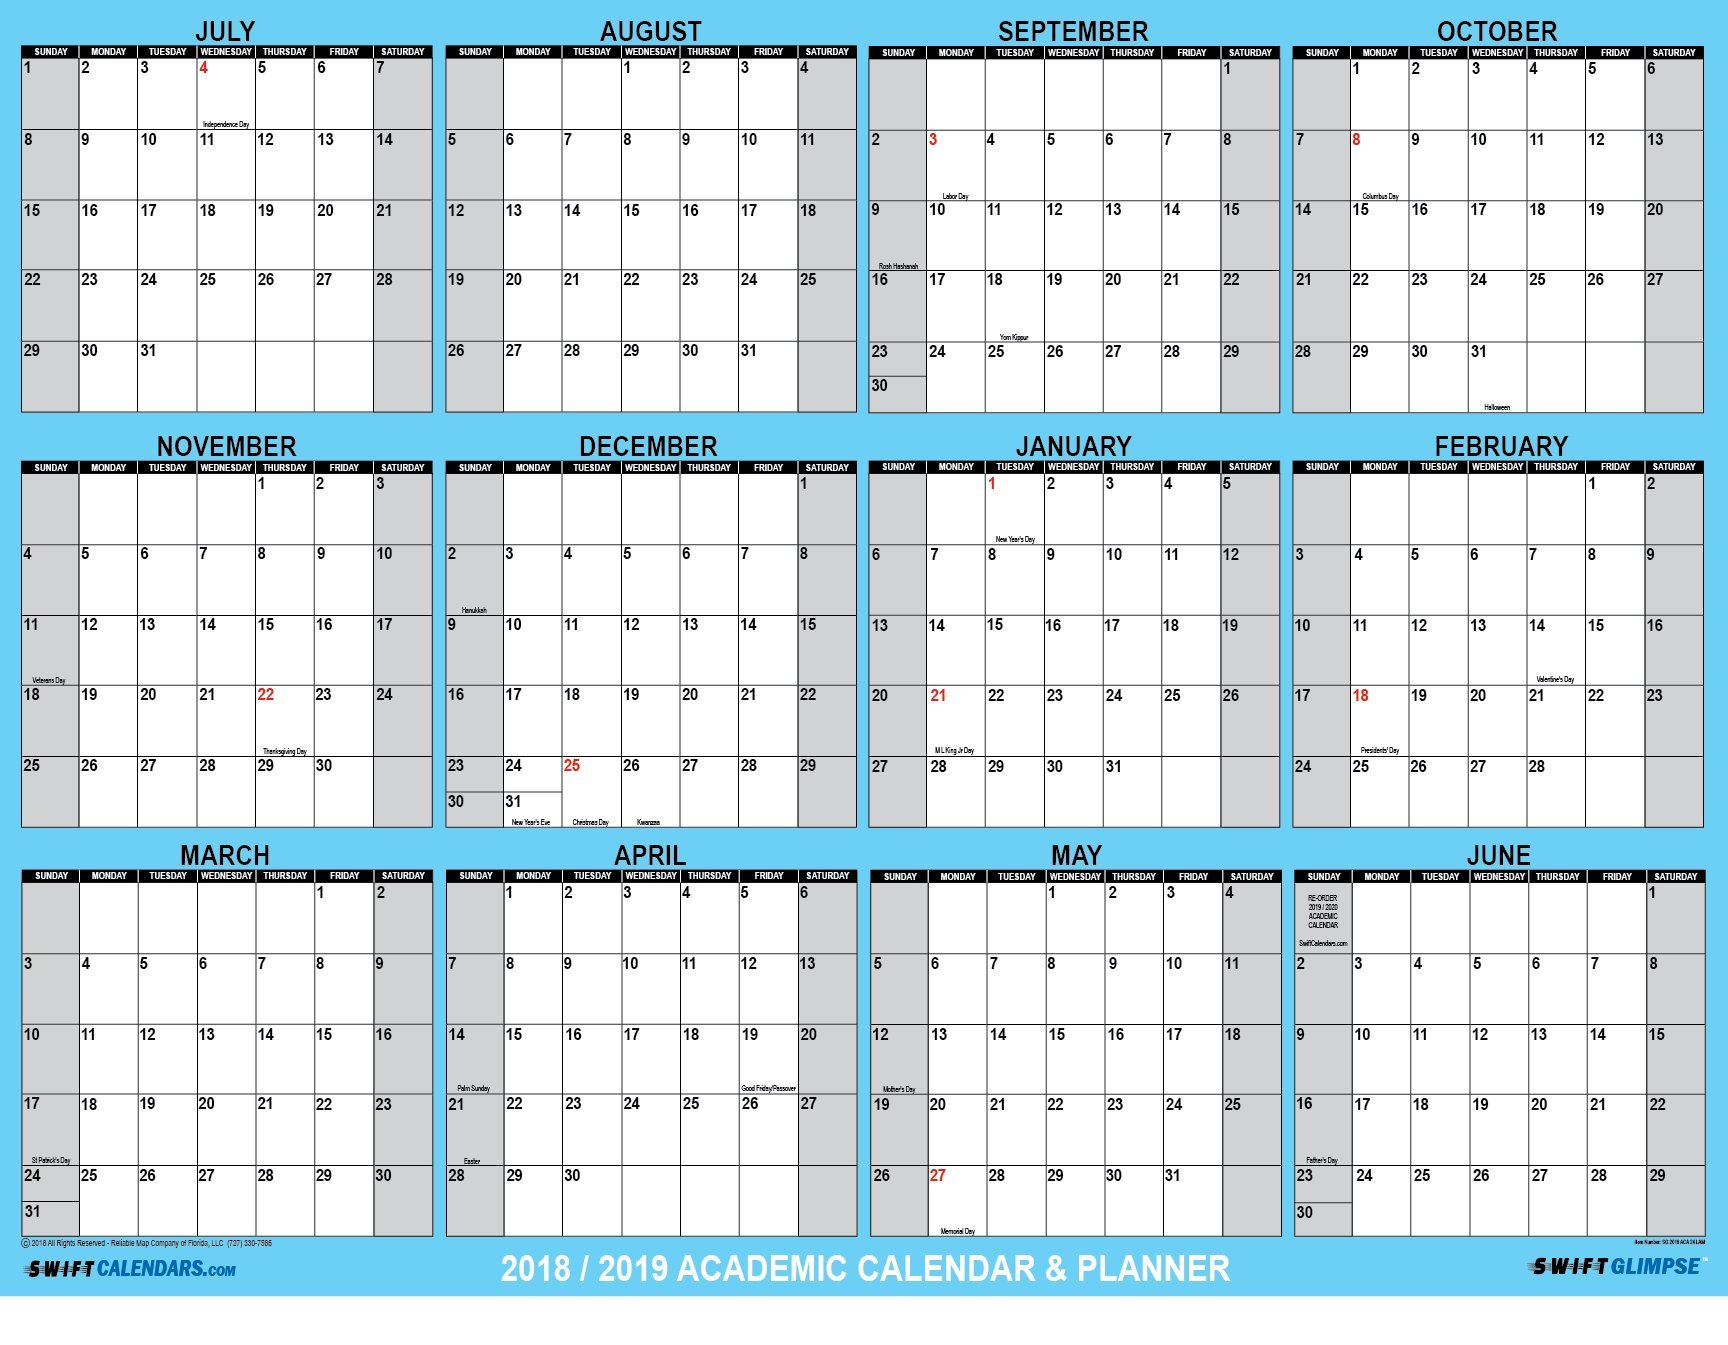 SwiftGlimpse 2018-2019 Academic Wall Calendar Erasable Large Jumbo Oversized Wet & Dry Erase Laminated 12 Month Planner, June - July - CLASSIC BLUE (32x48 Horizontal)